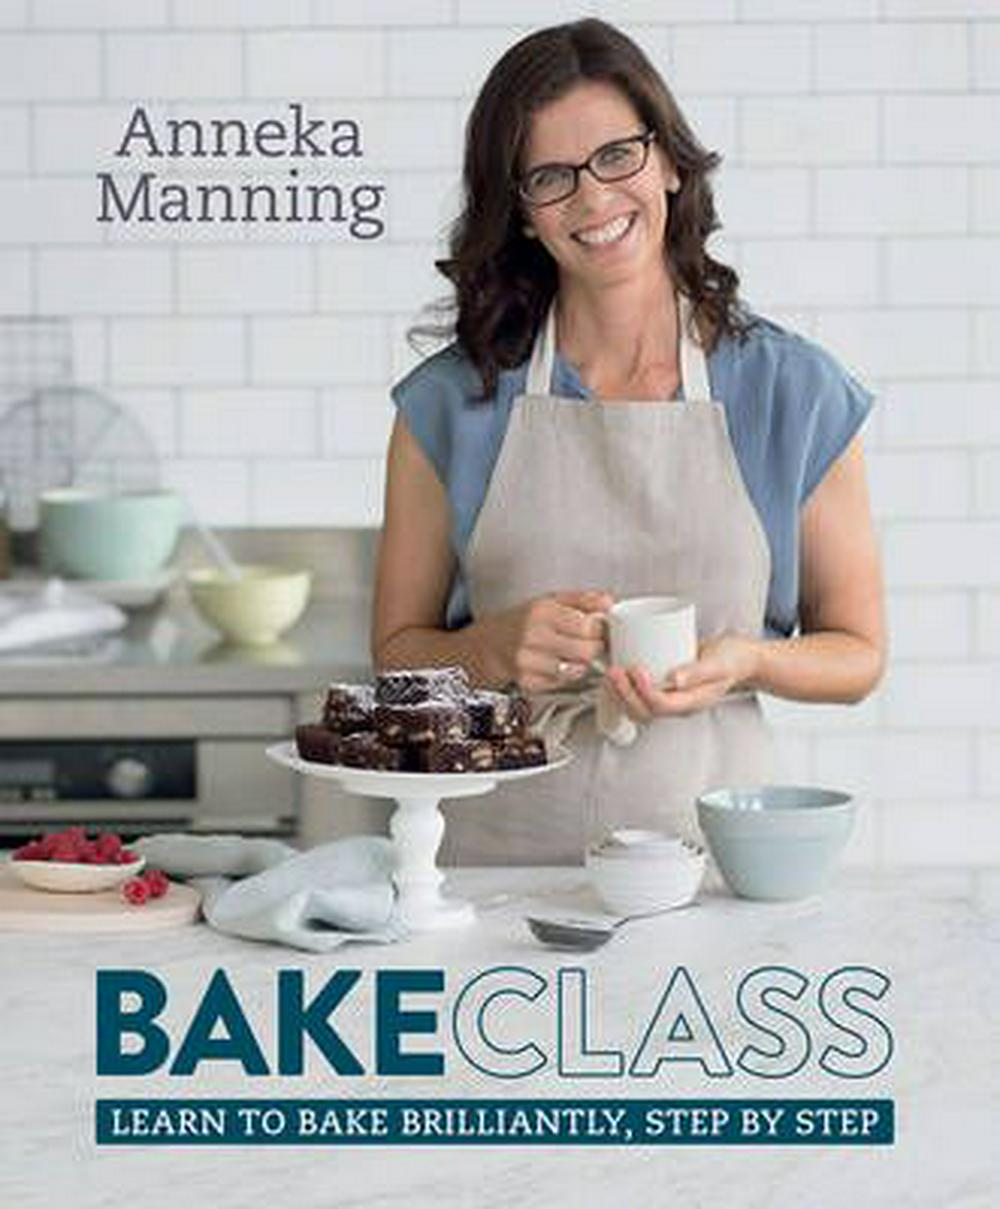 BakeClassLearn to bake brilliantly, step by step